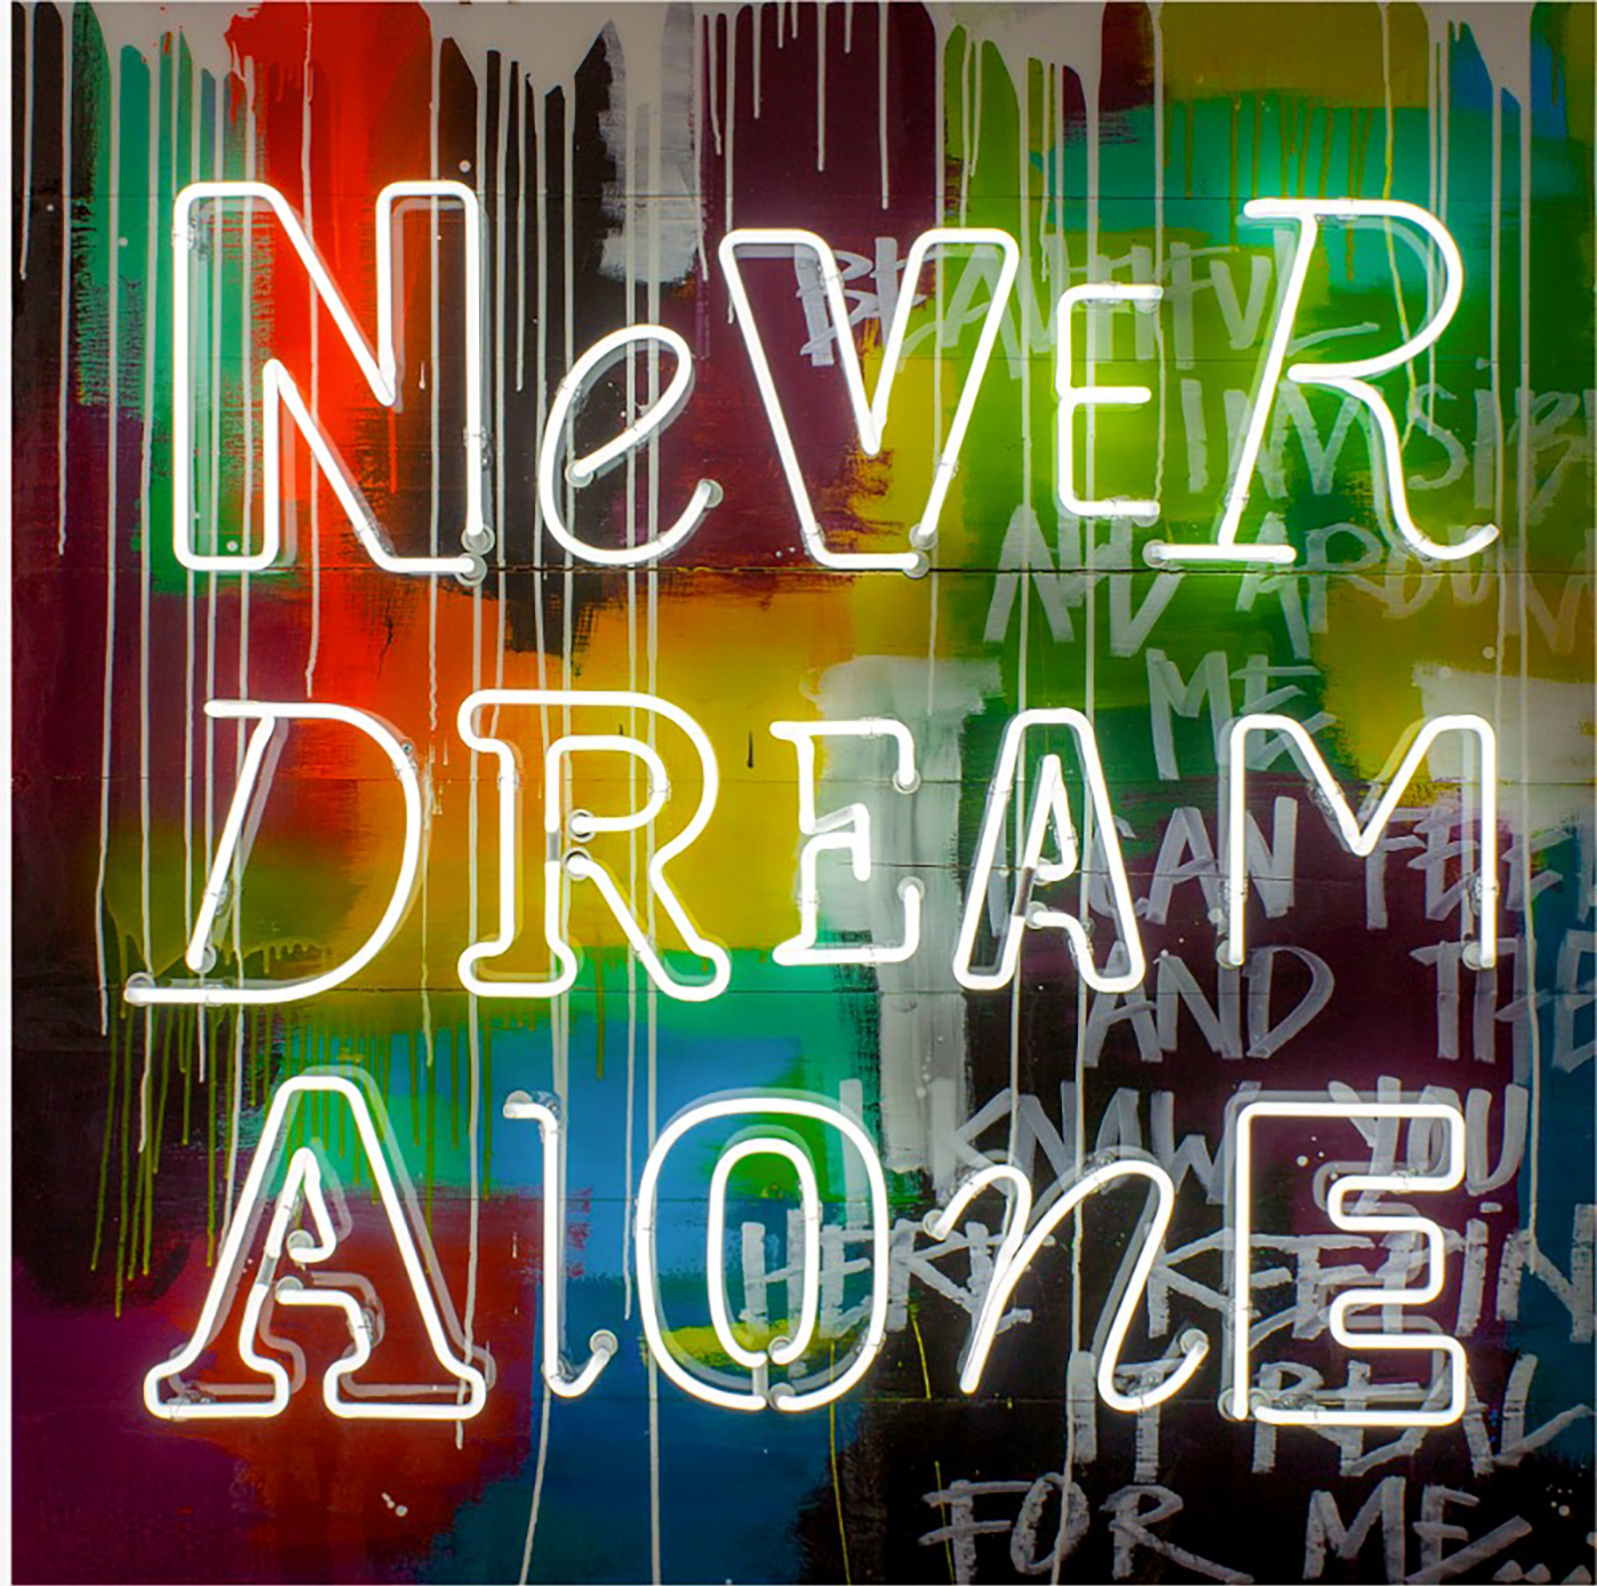 NEVER DREAM ALONE NEON - Collaboration with Gods Own Junkyard - Price on request